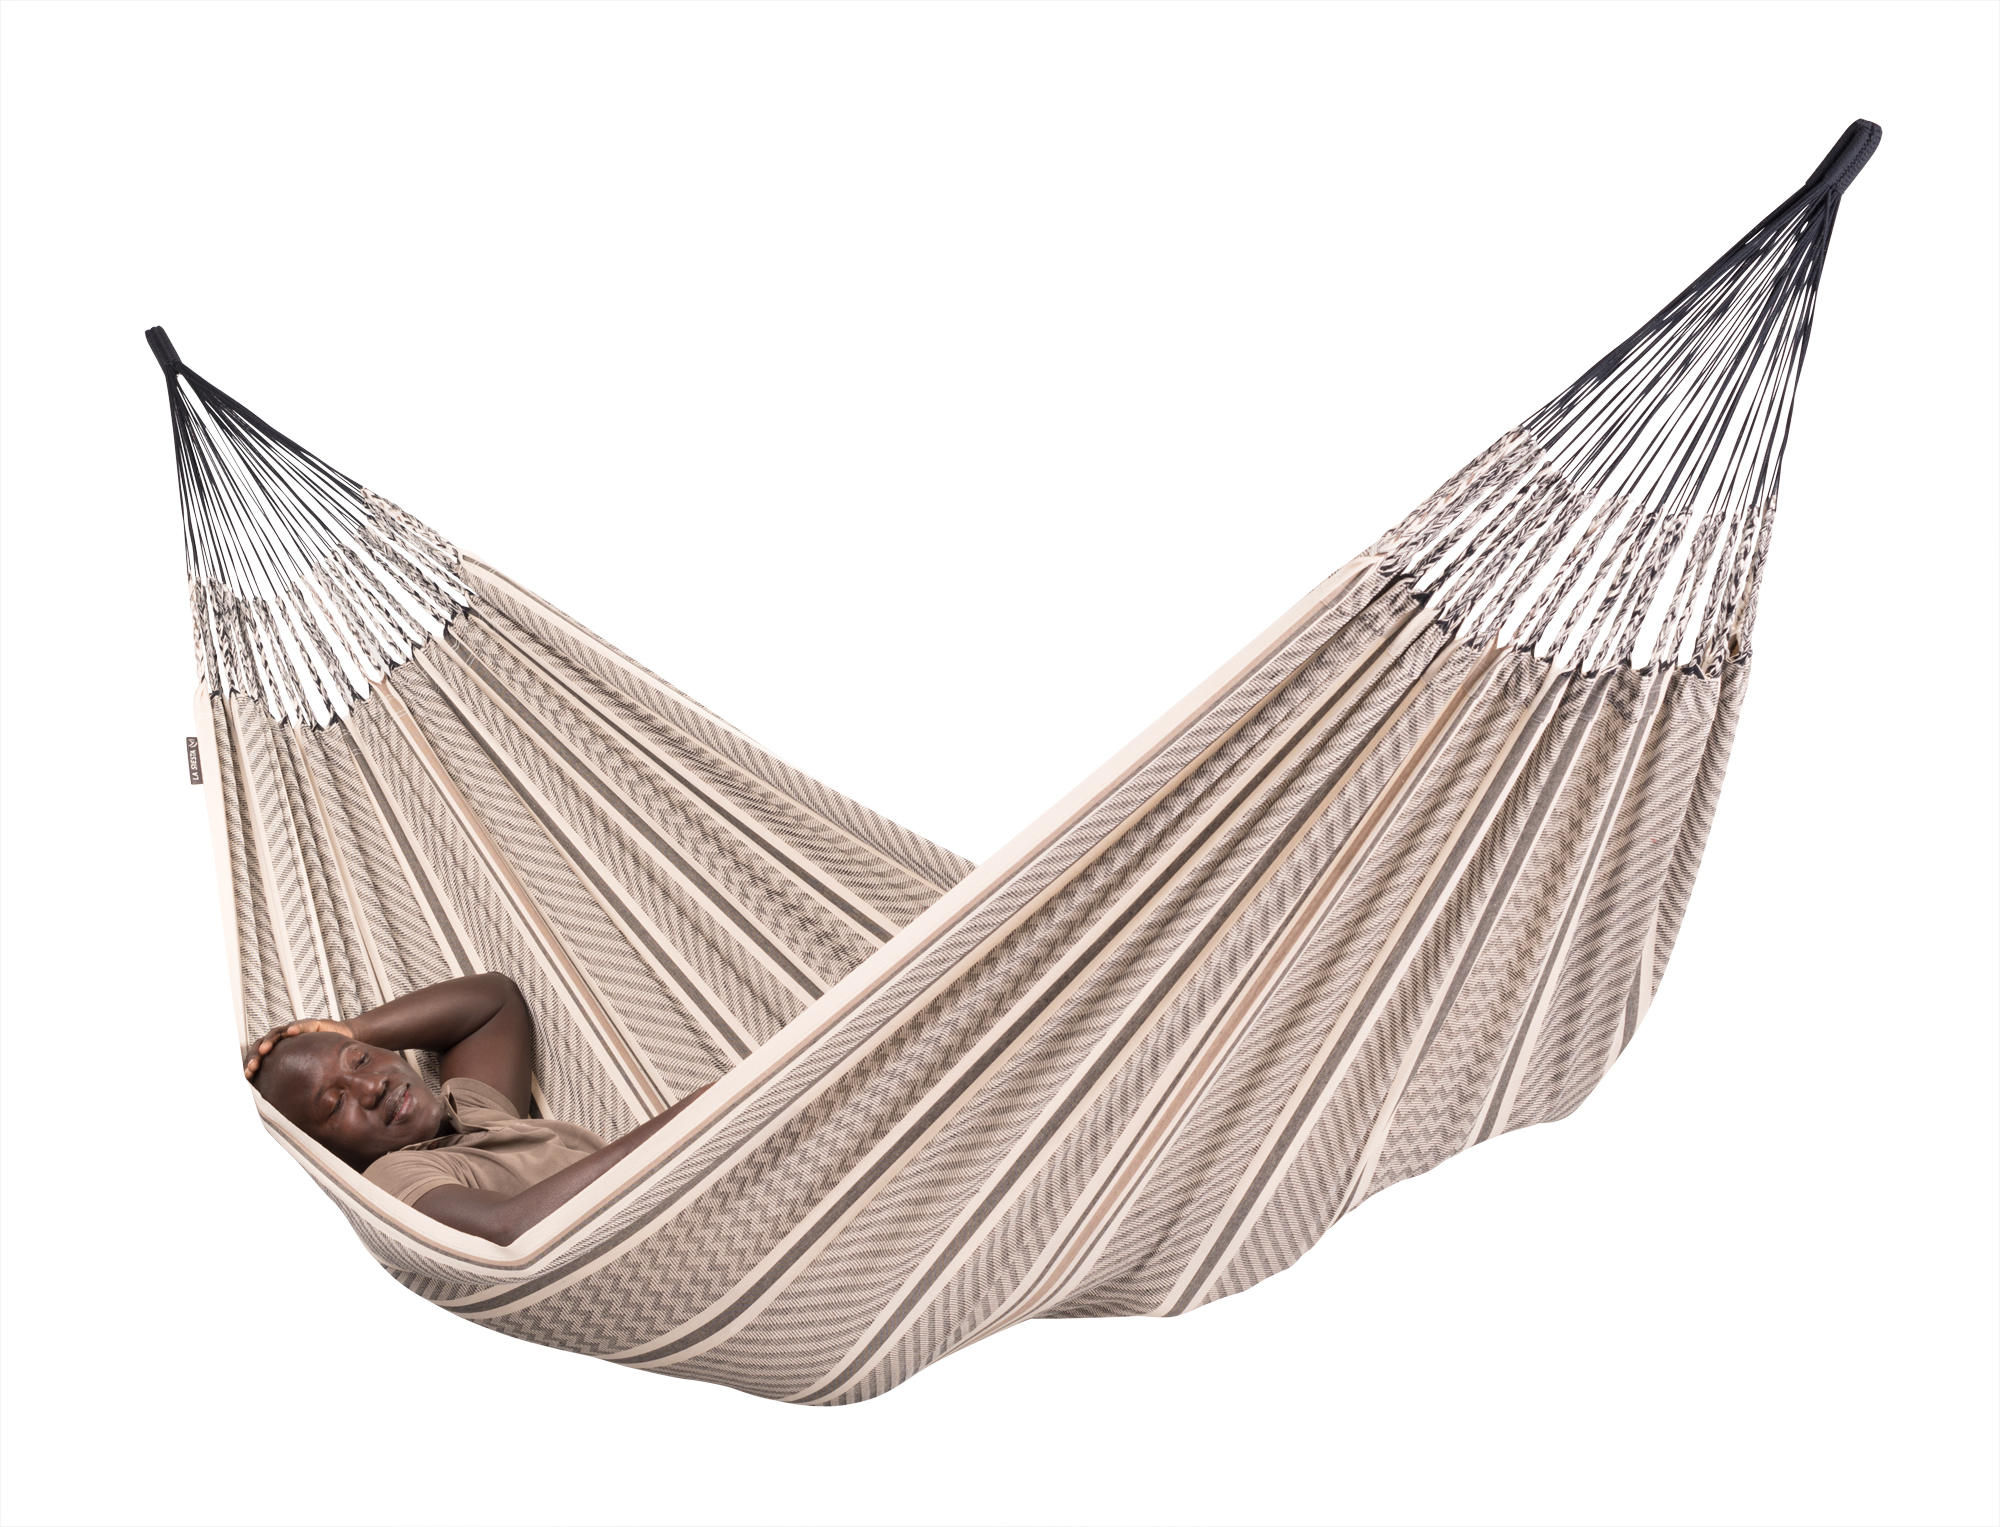 First La Siesta GOTS certified hammock made 100% of Colombian organic cotton, 2016